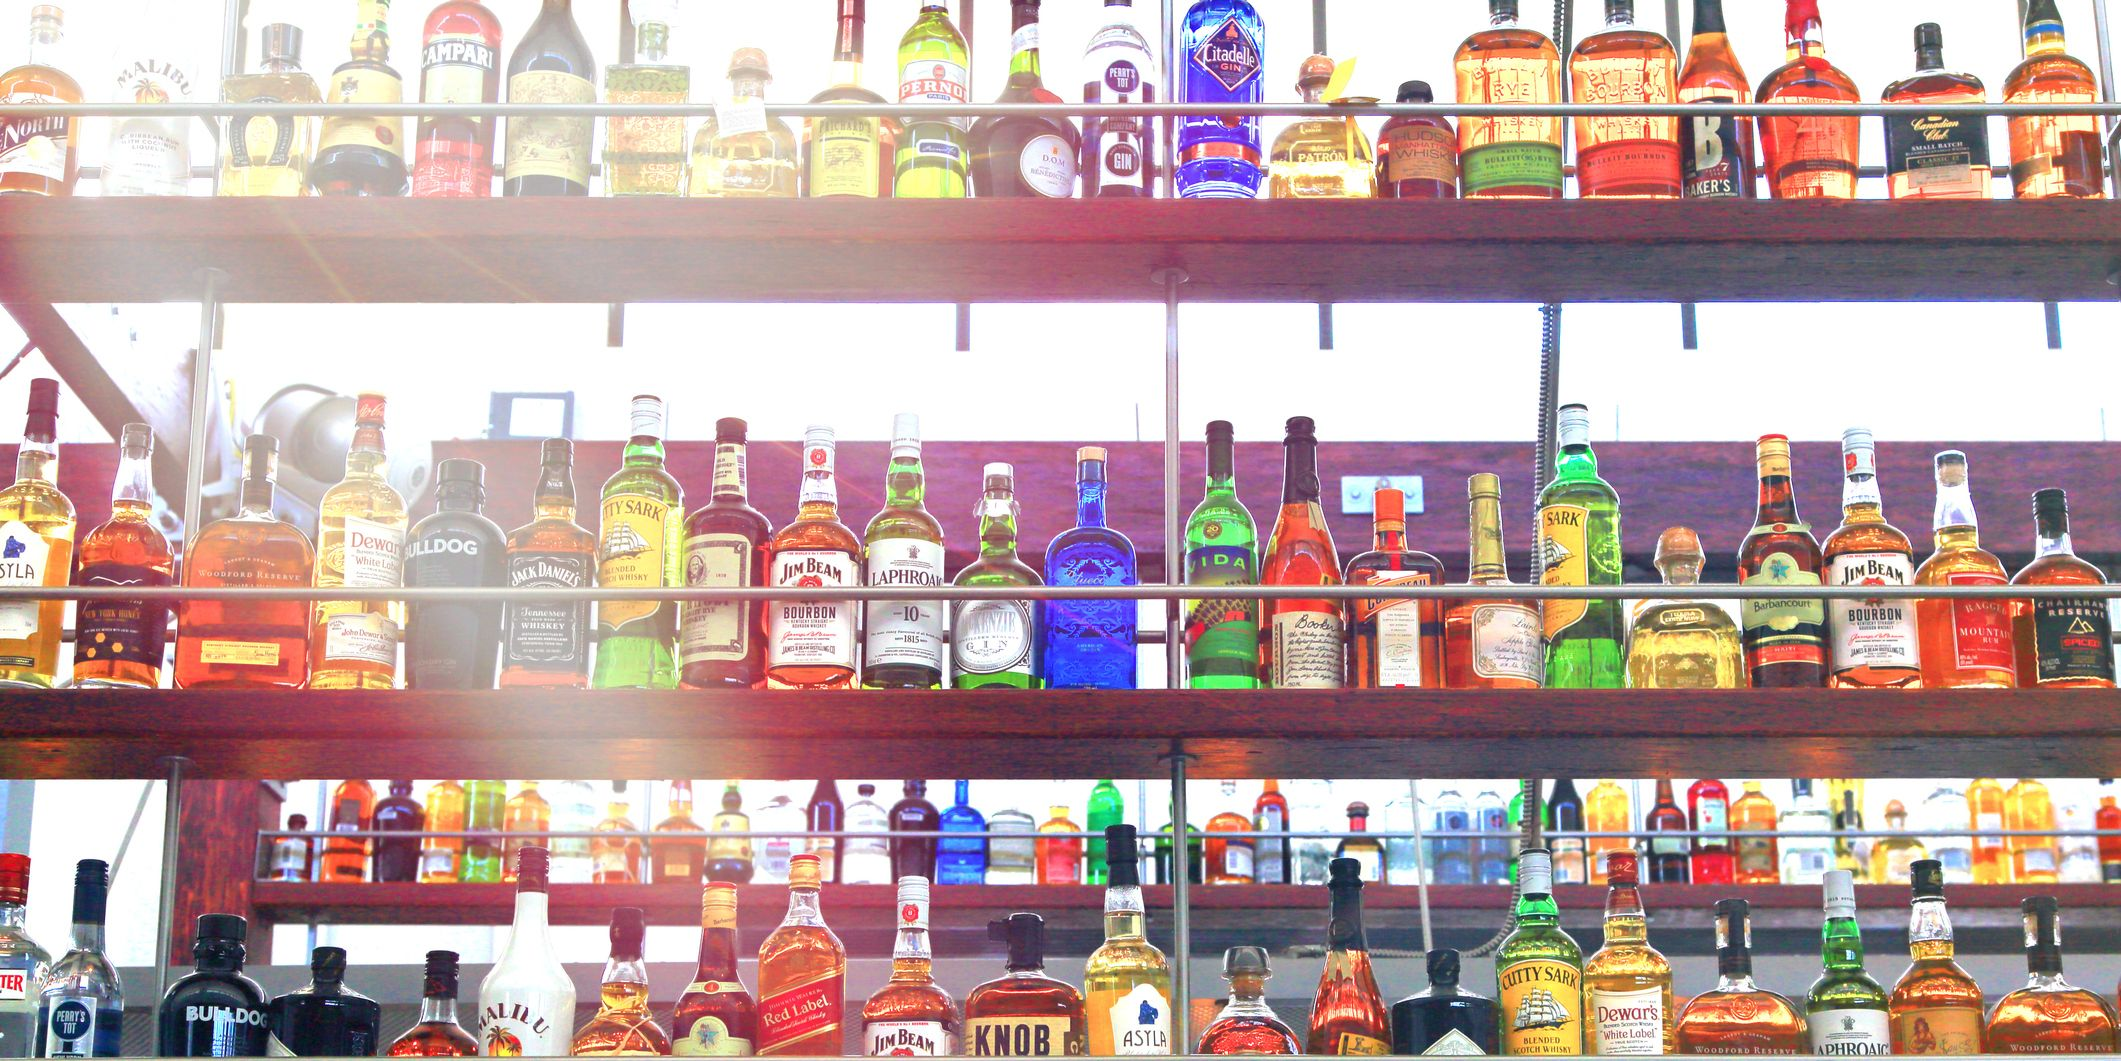 how long before a race should you stop drinking alcohol?.